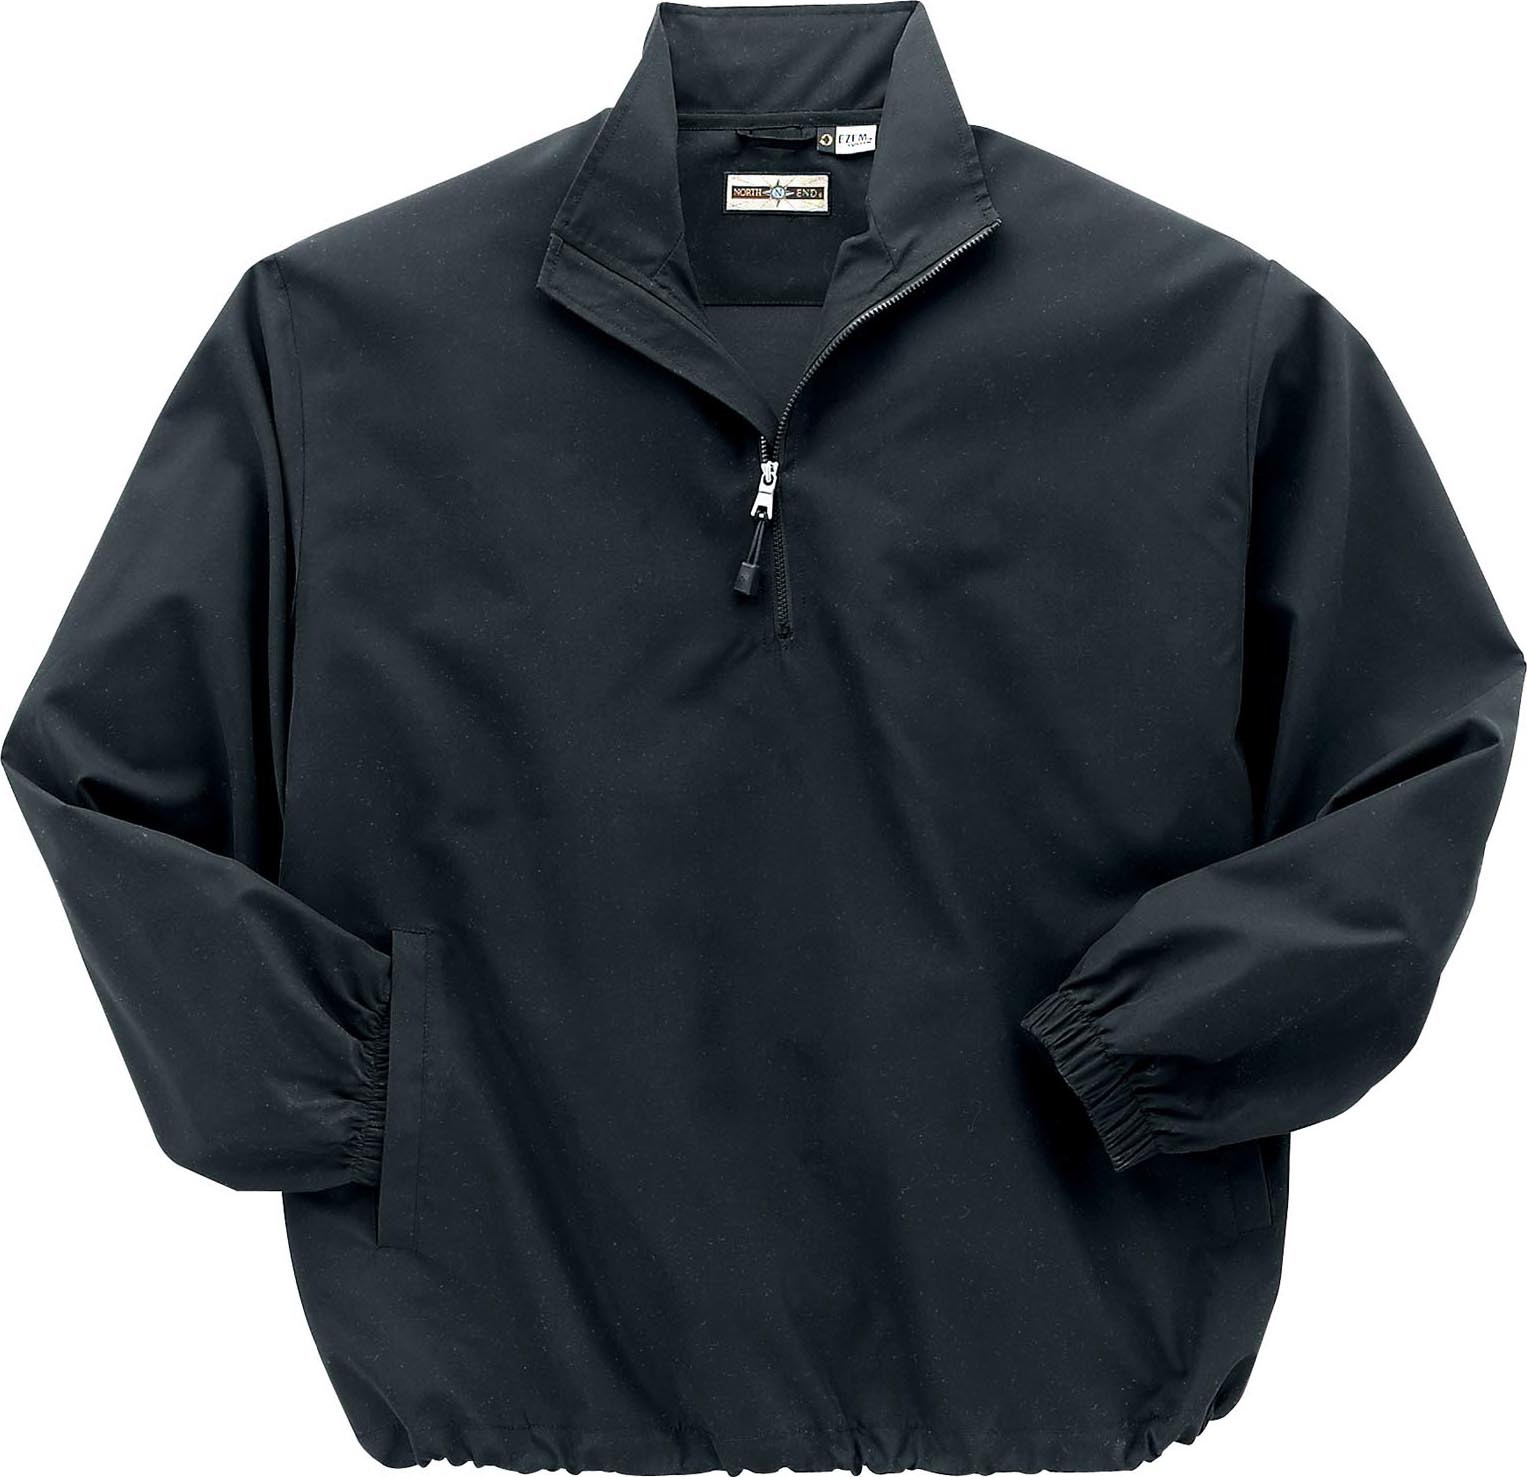 Ash City Windshirts 88044 - Men's Micro Plus Half-Zip ...